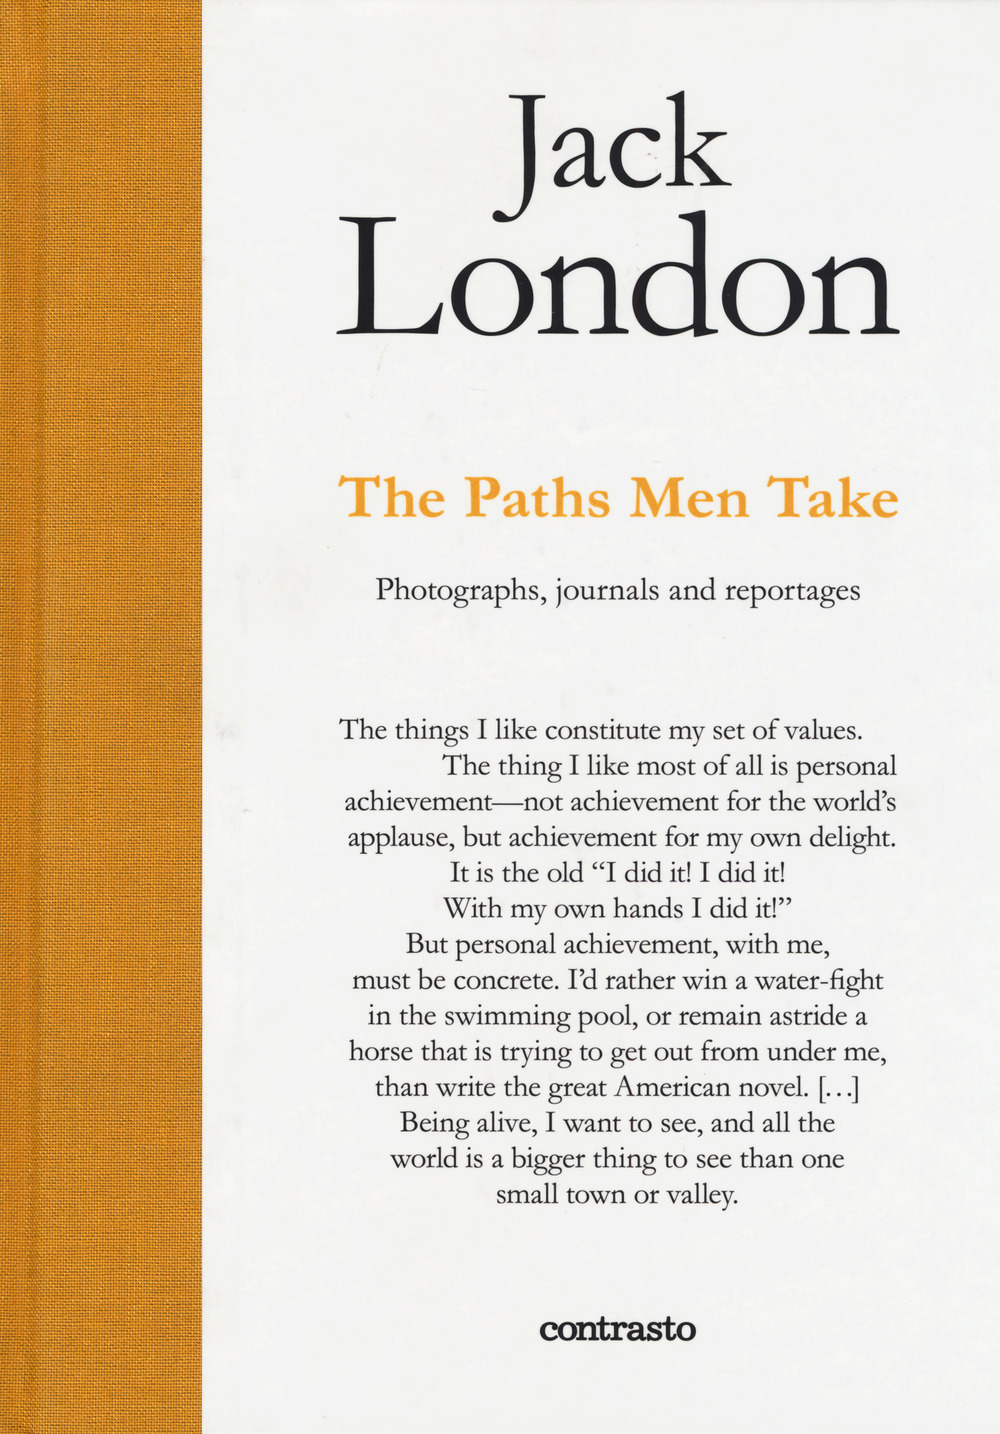 Jack London. The paths men take. Photographs, journals and reportages